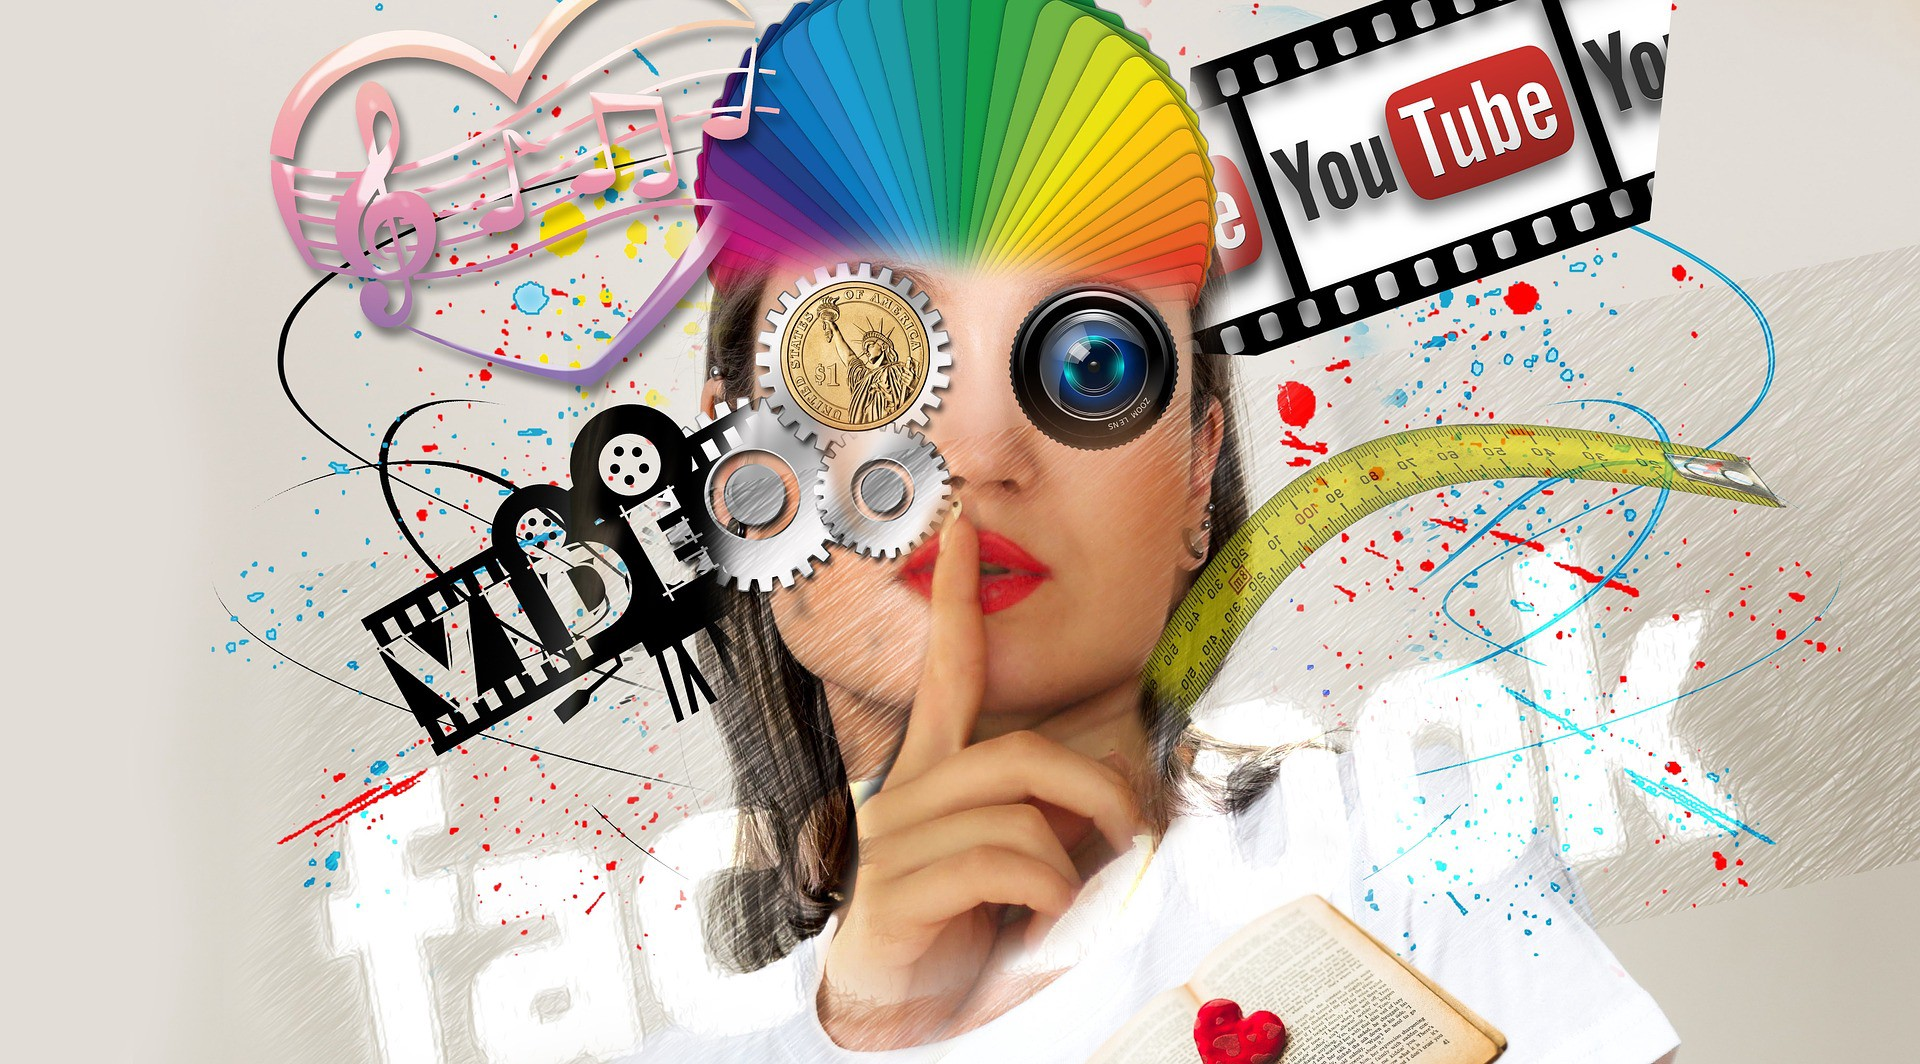 Colorful illustration of woman with her finger to her lips surrounded by different social media logos.